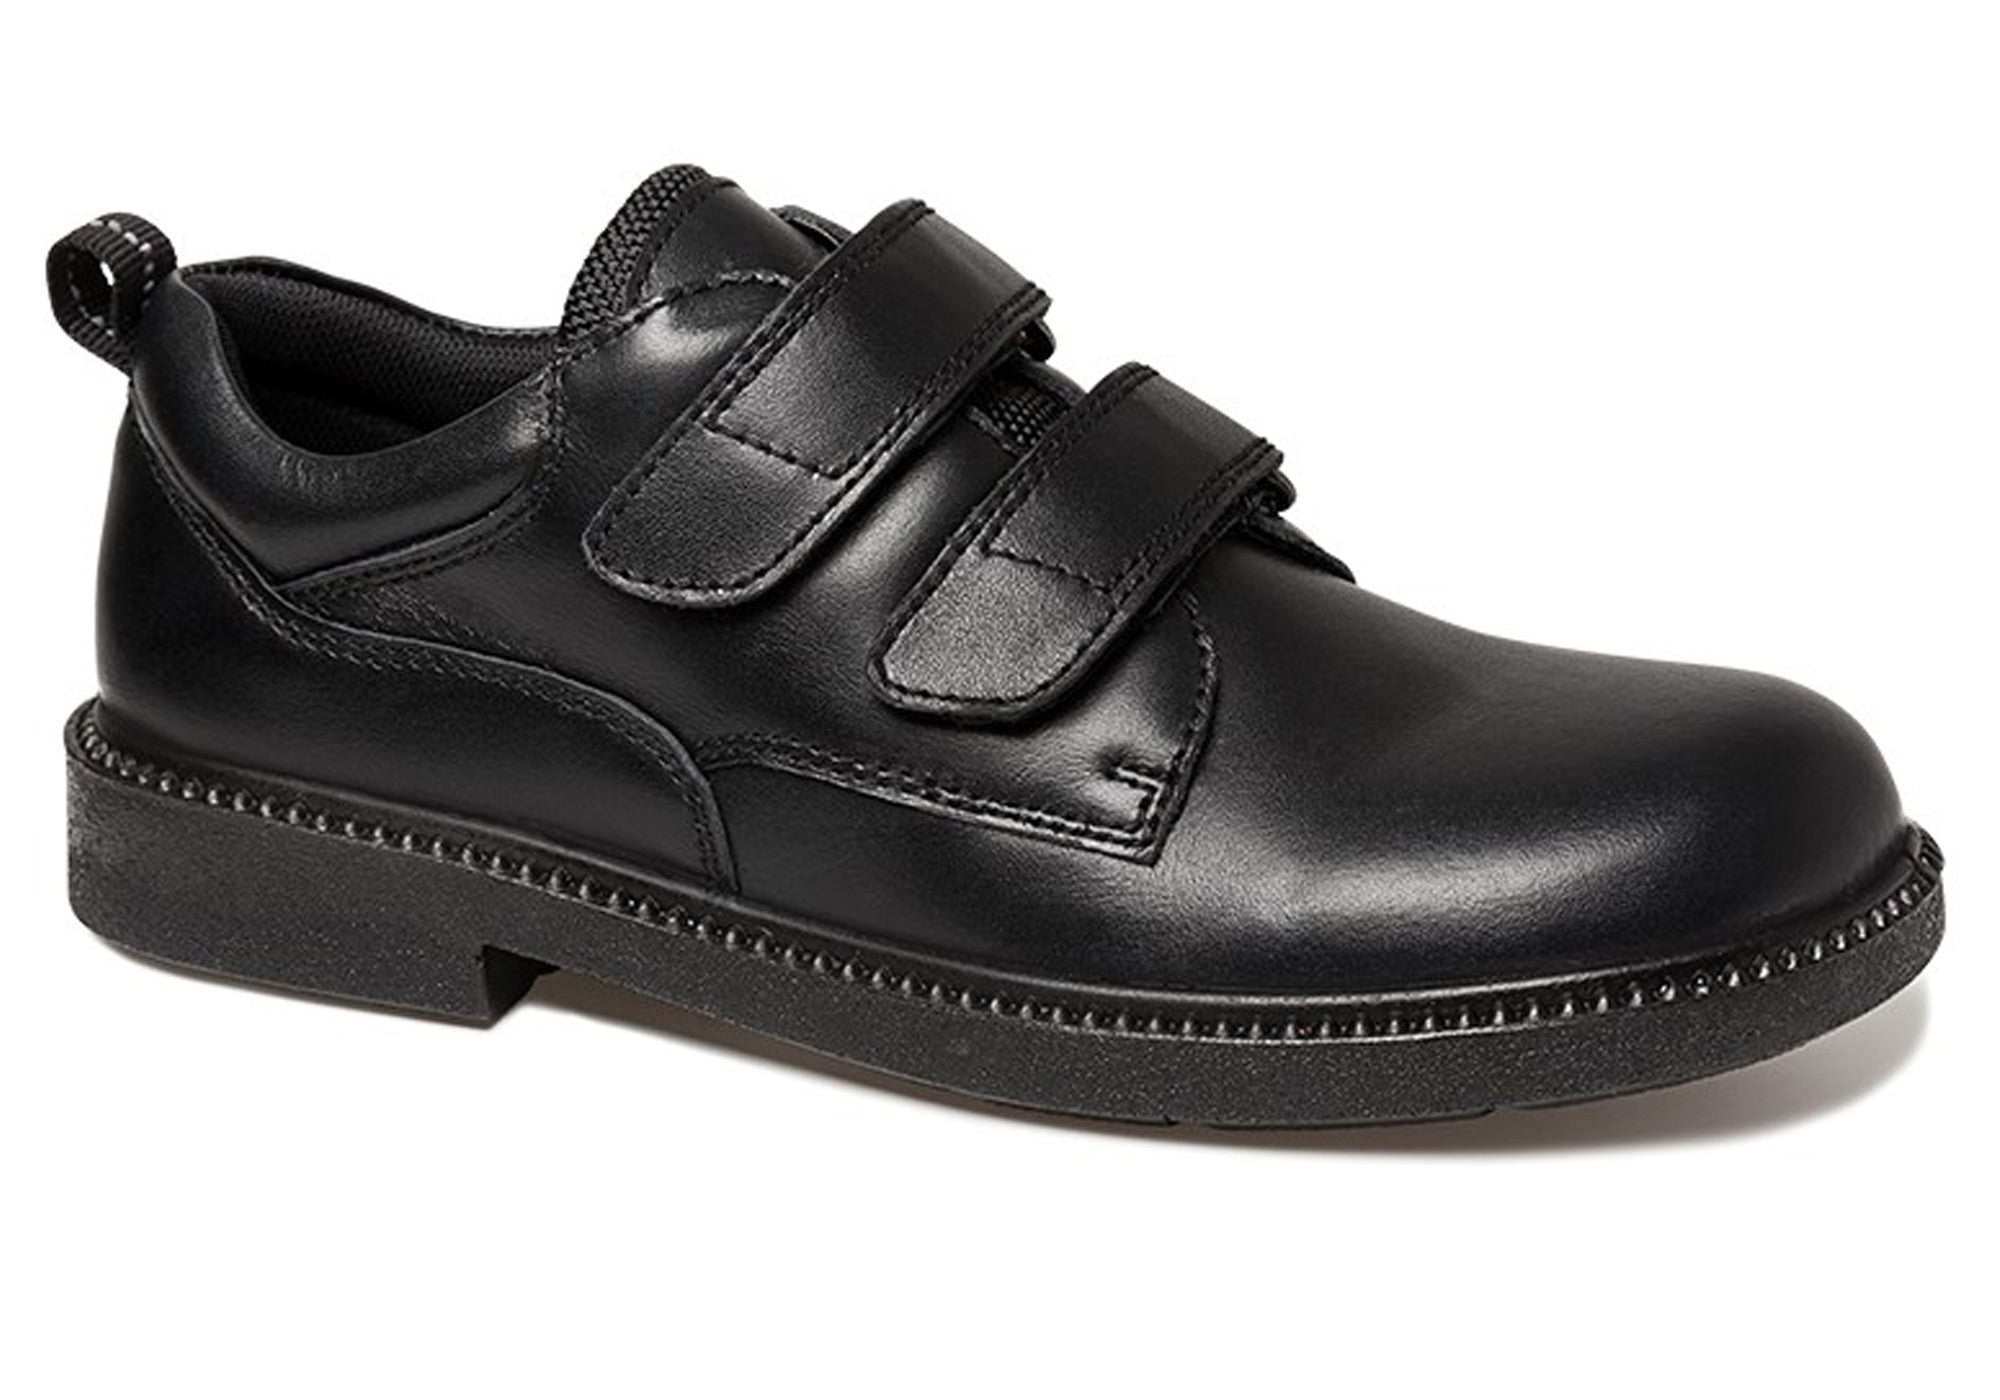 Details about New Clarks Reliance Kids Leather School Shoes With Adjustable  Straps c55e7ed89